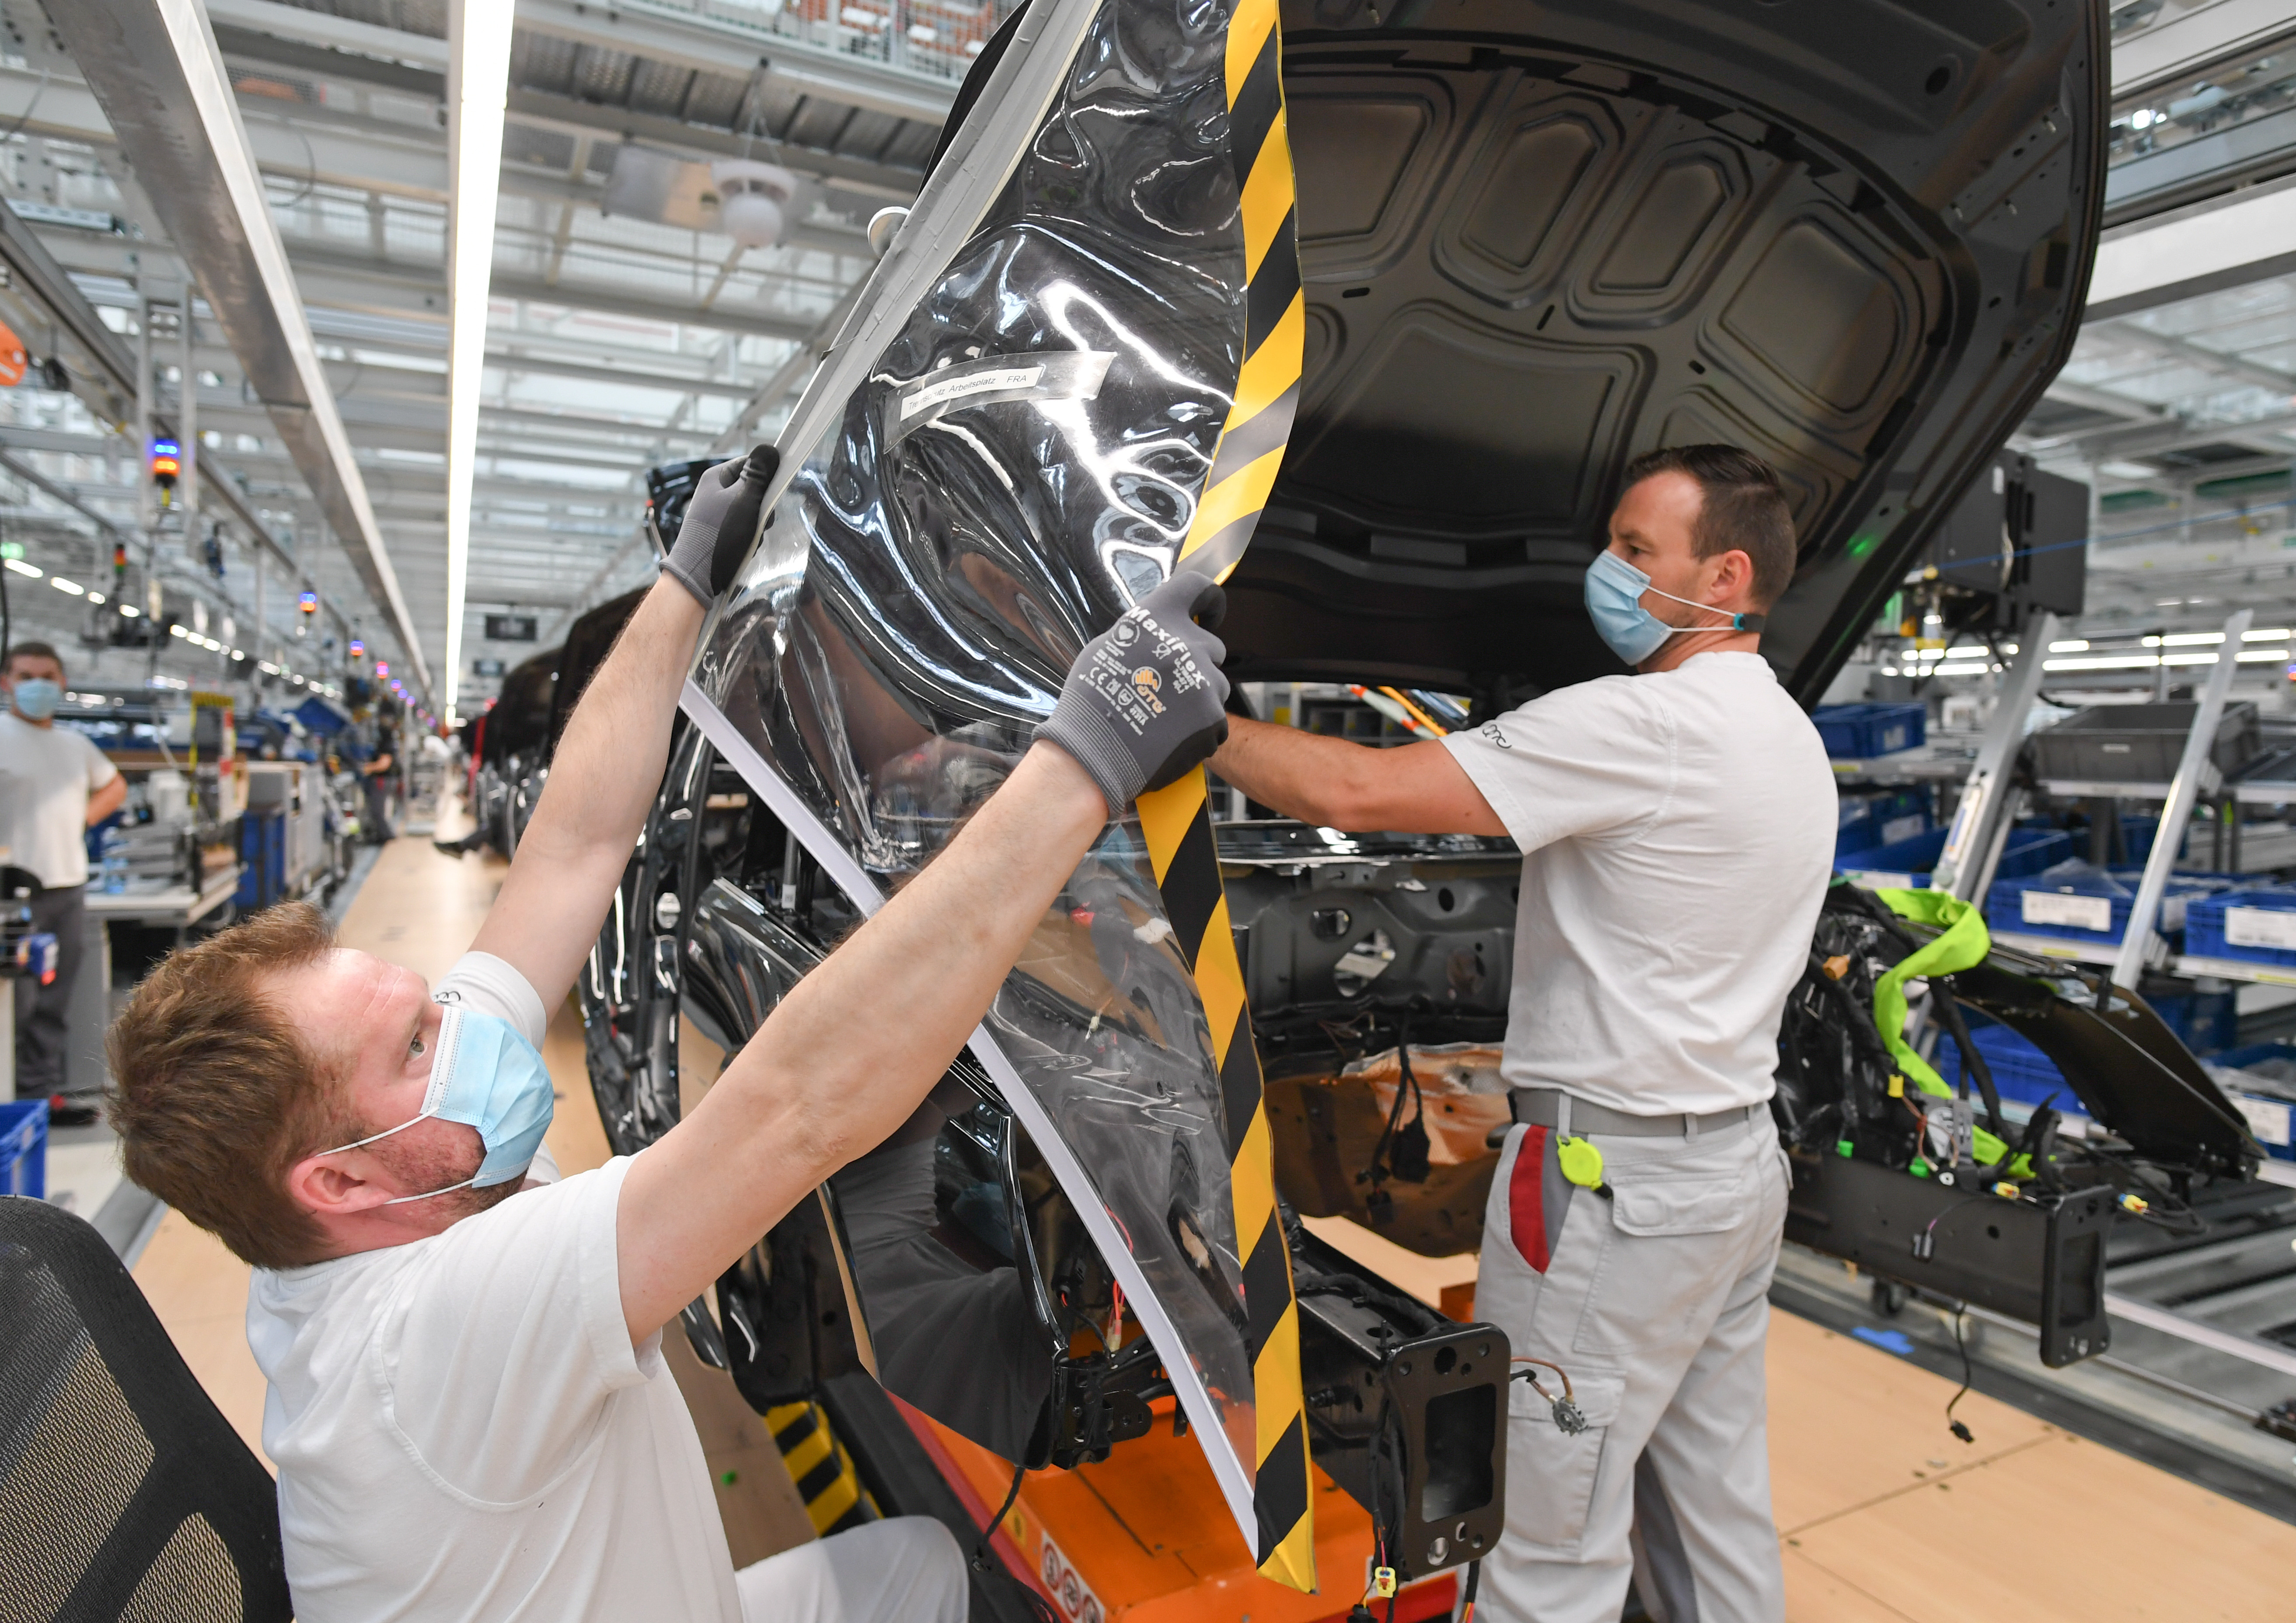 image of two employees, separated by plastic hygiene protection, working in car manufacturing during COVID-19